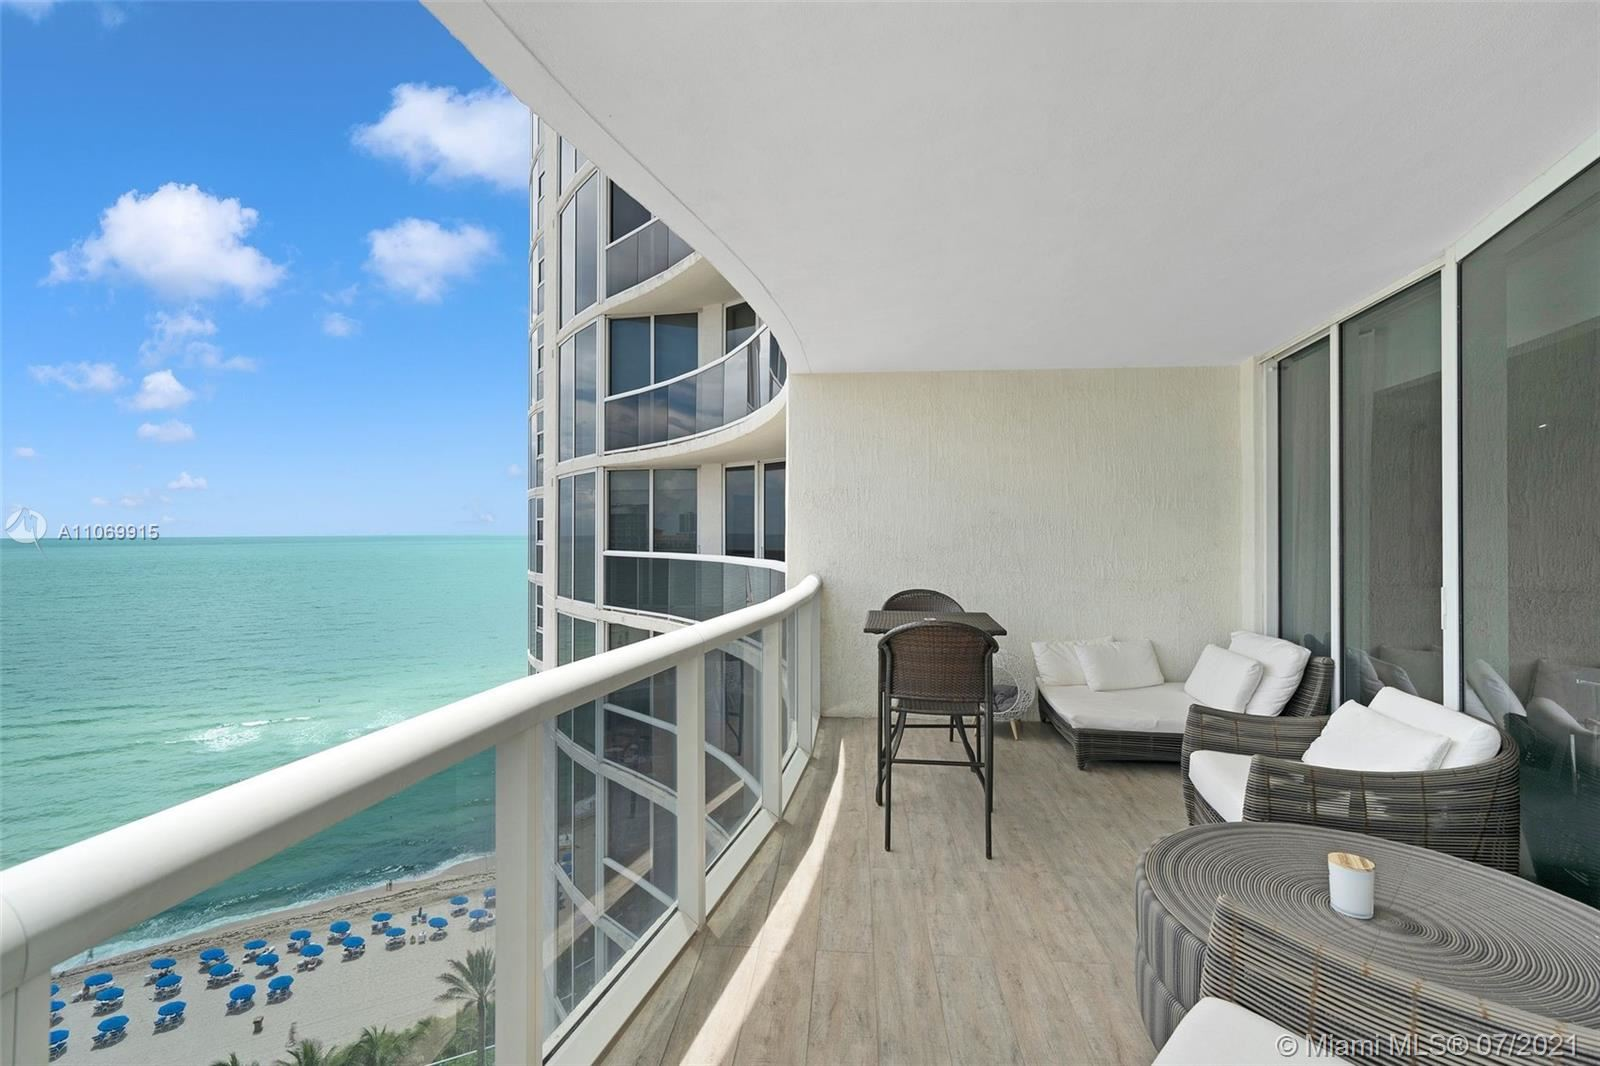 17201 Collins Ave #1807, Sunny Isles, FL 33160 - #: A11069915